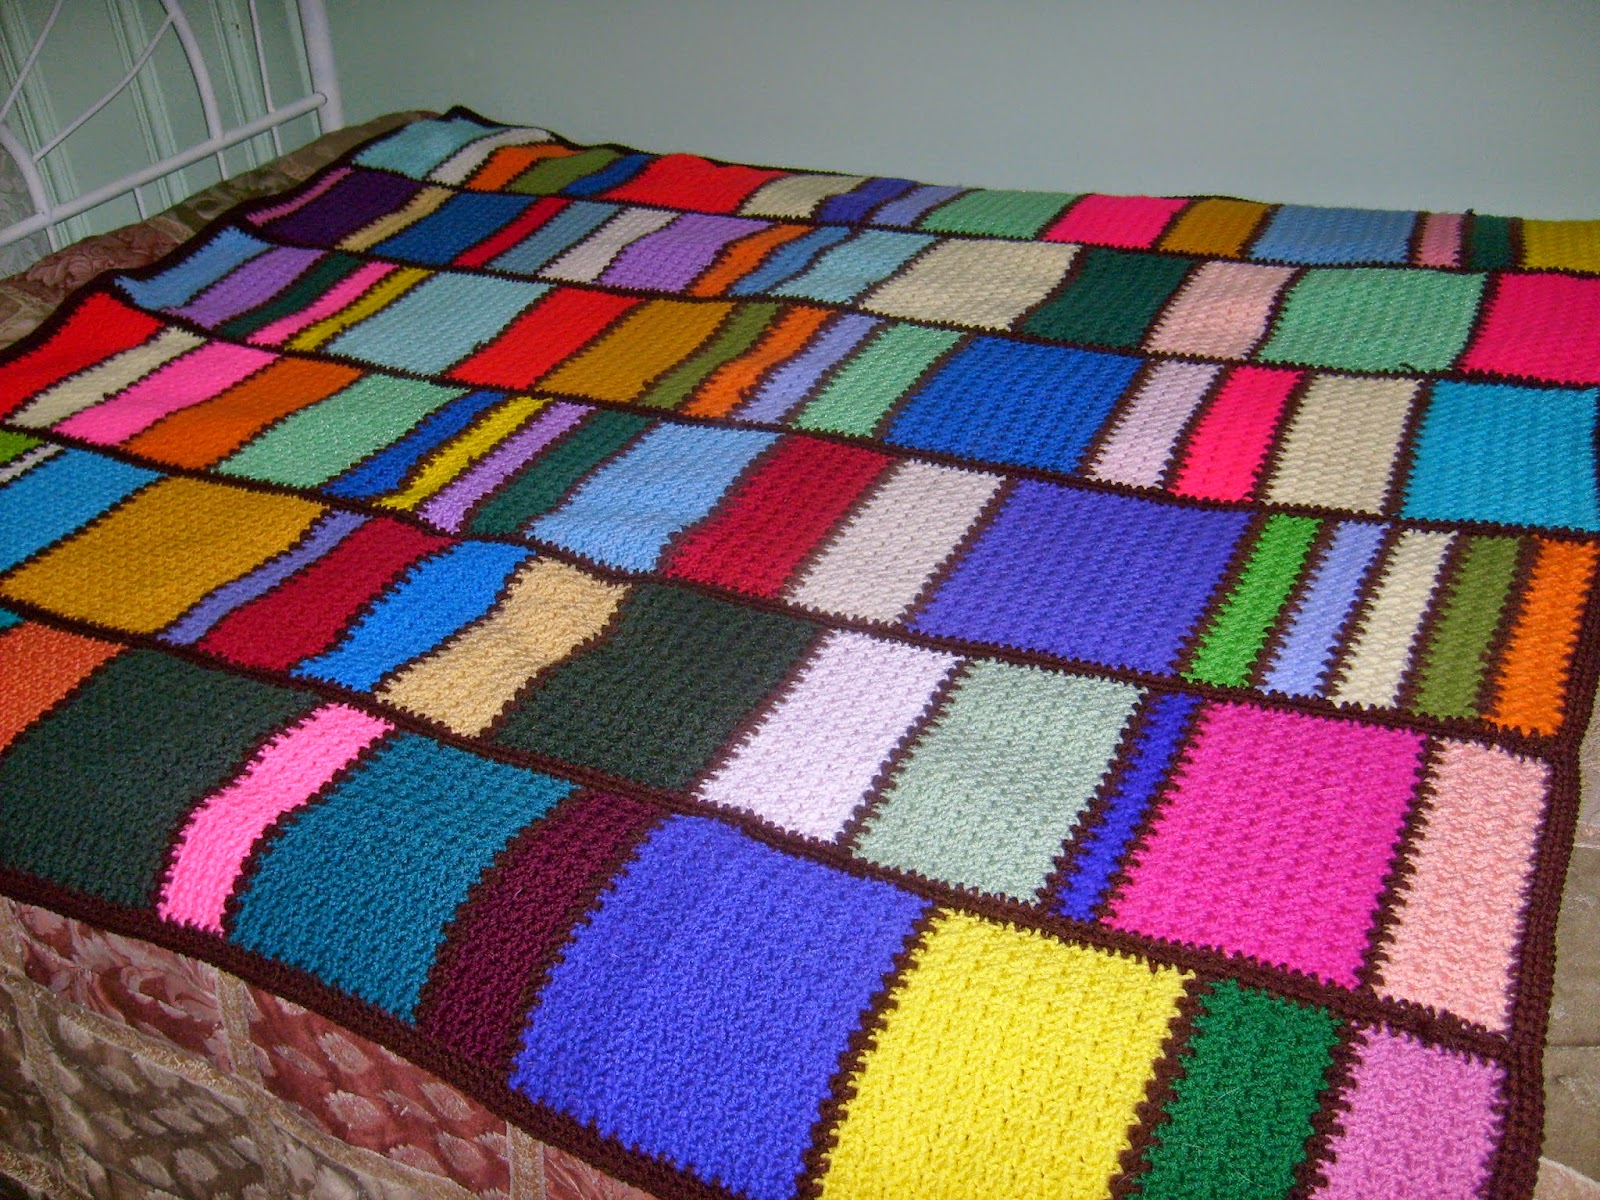 Manners Crochet and Craft: Meemaws Scrap Afghan